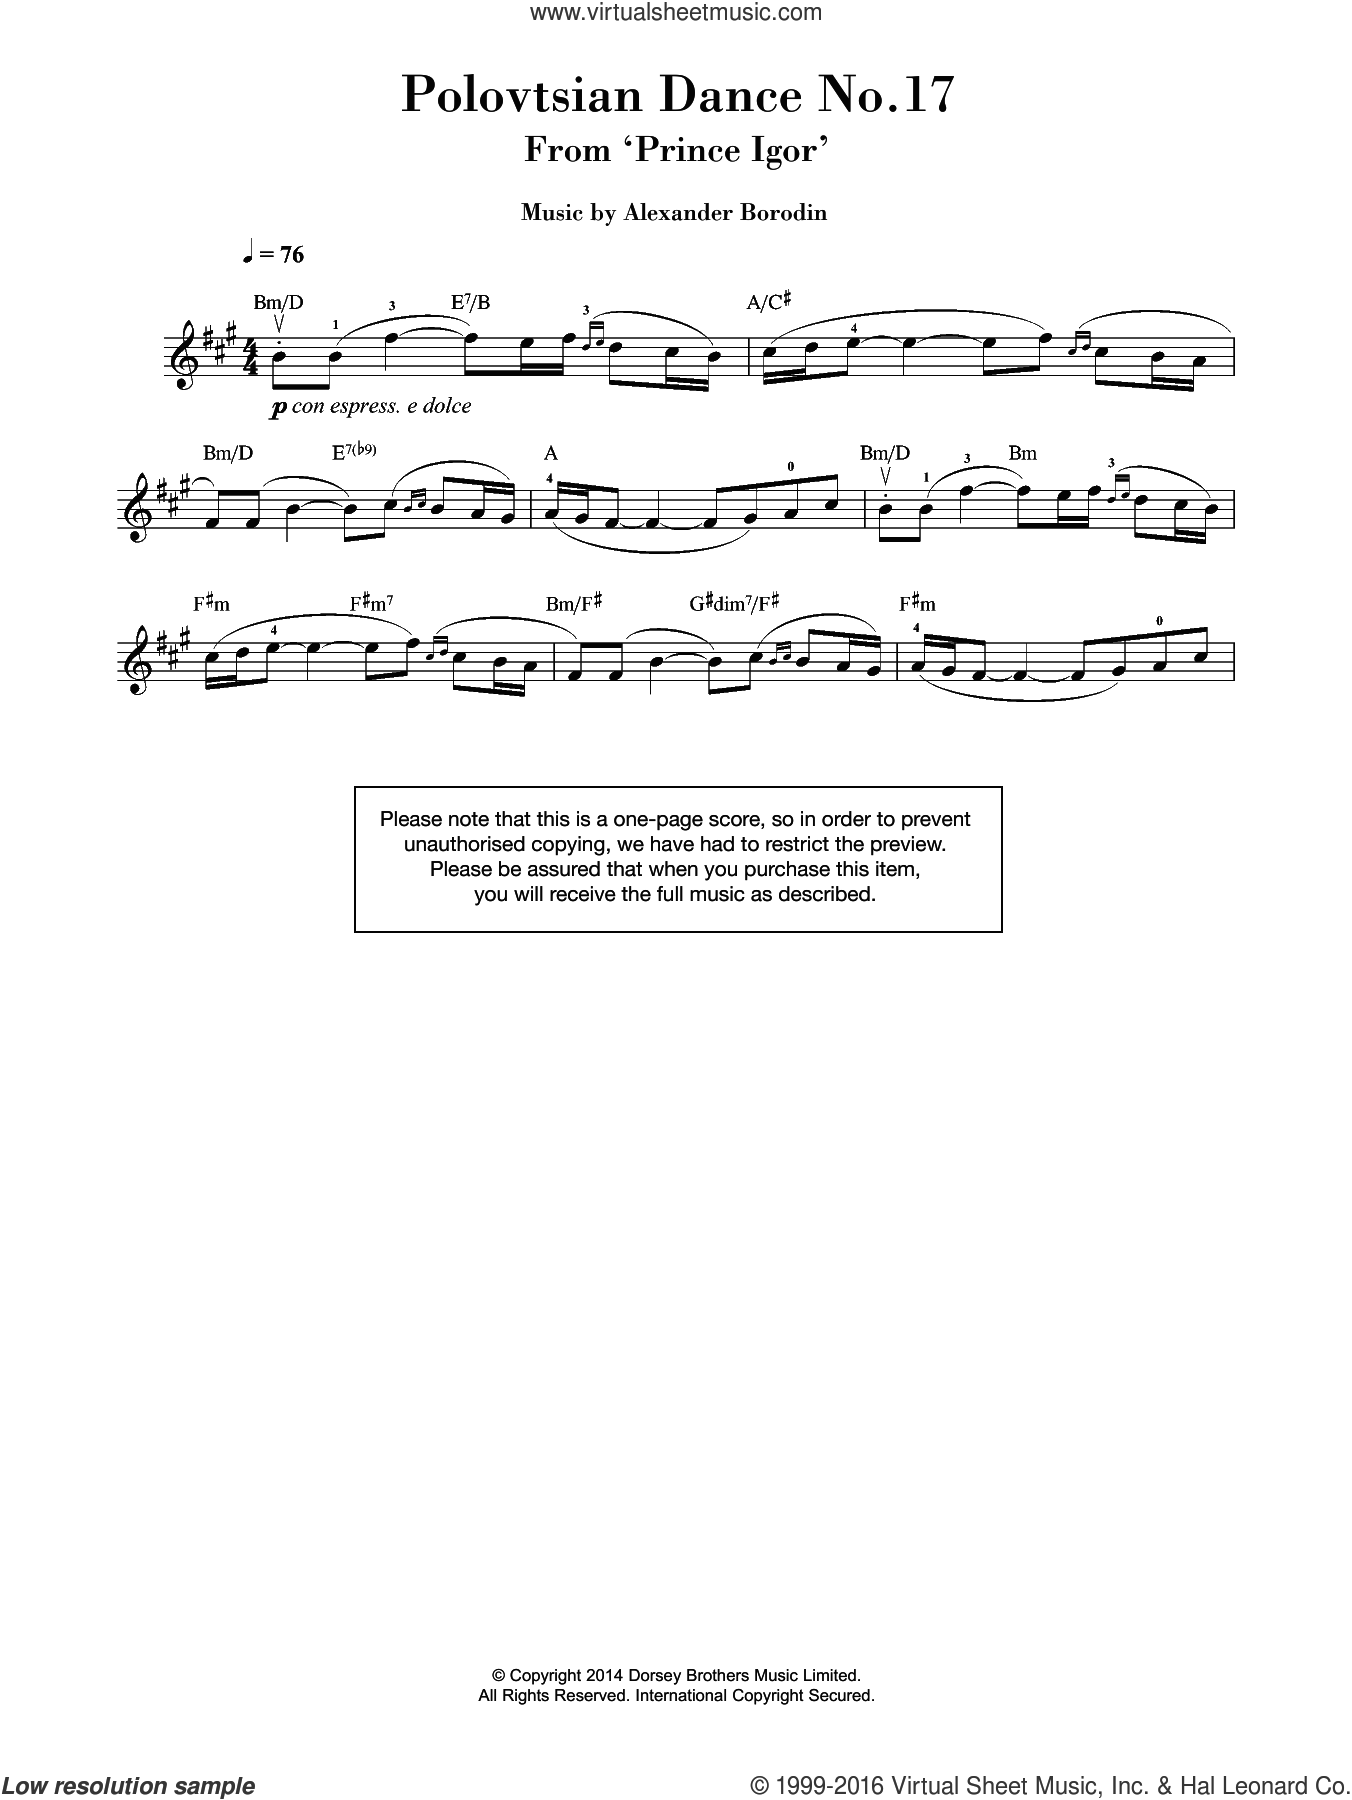 Polovtsian Dance No.17 (from 'Prince Igor') sheet music for violin solo by Alexander Borodin, classical score, intermediate skill level